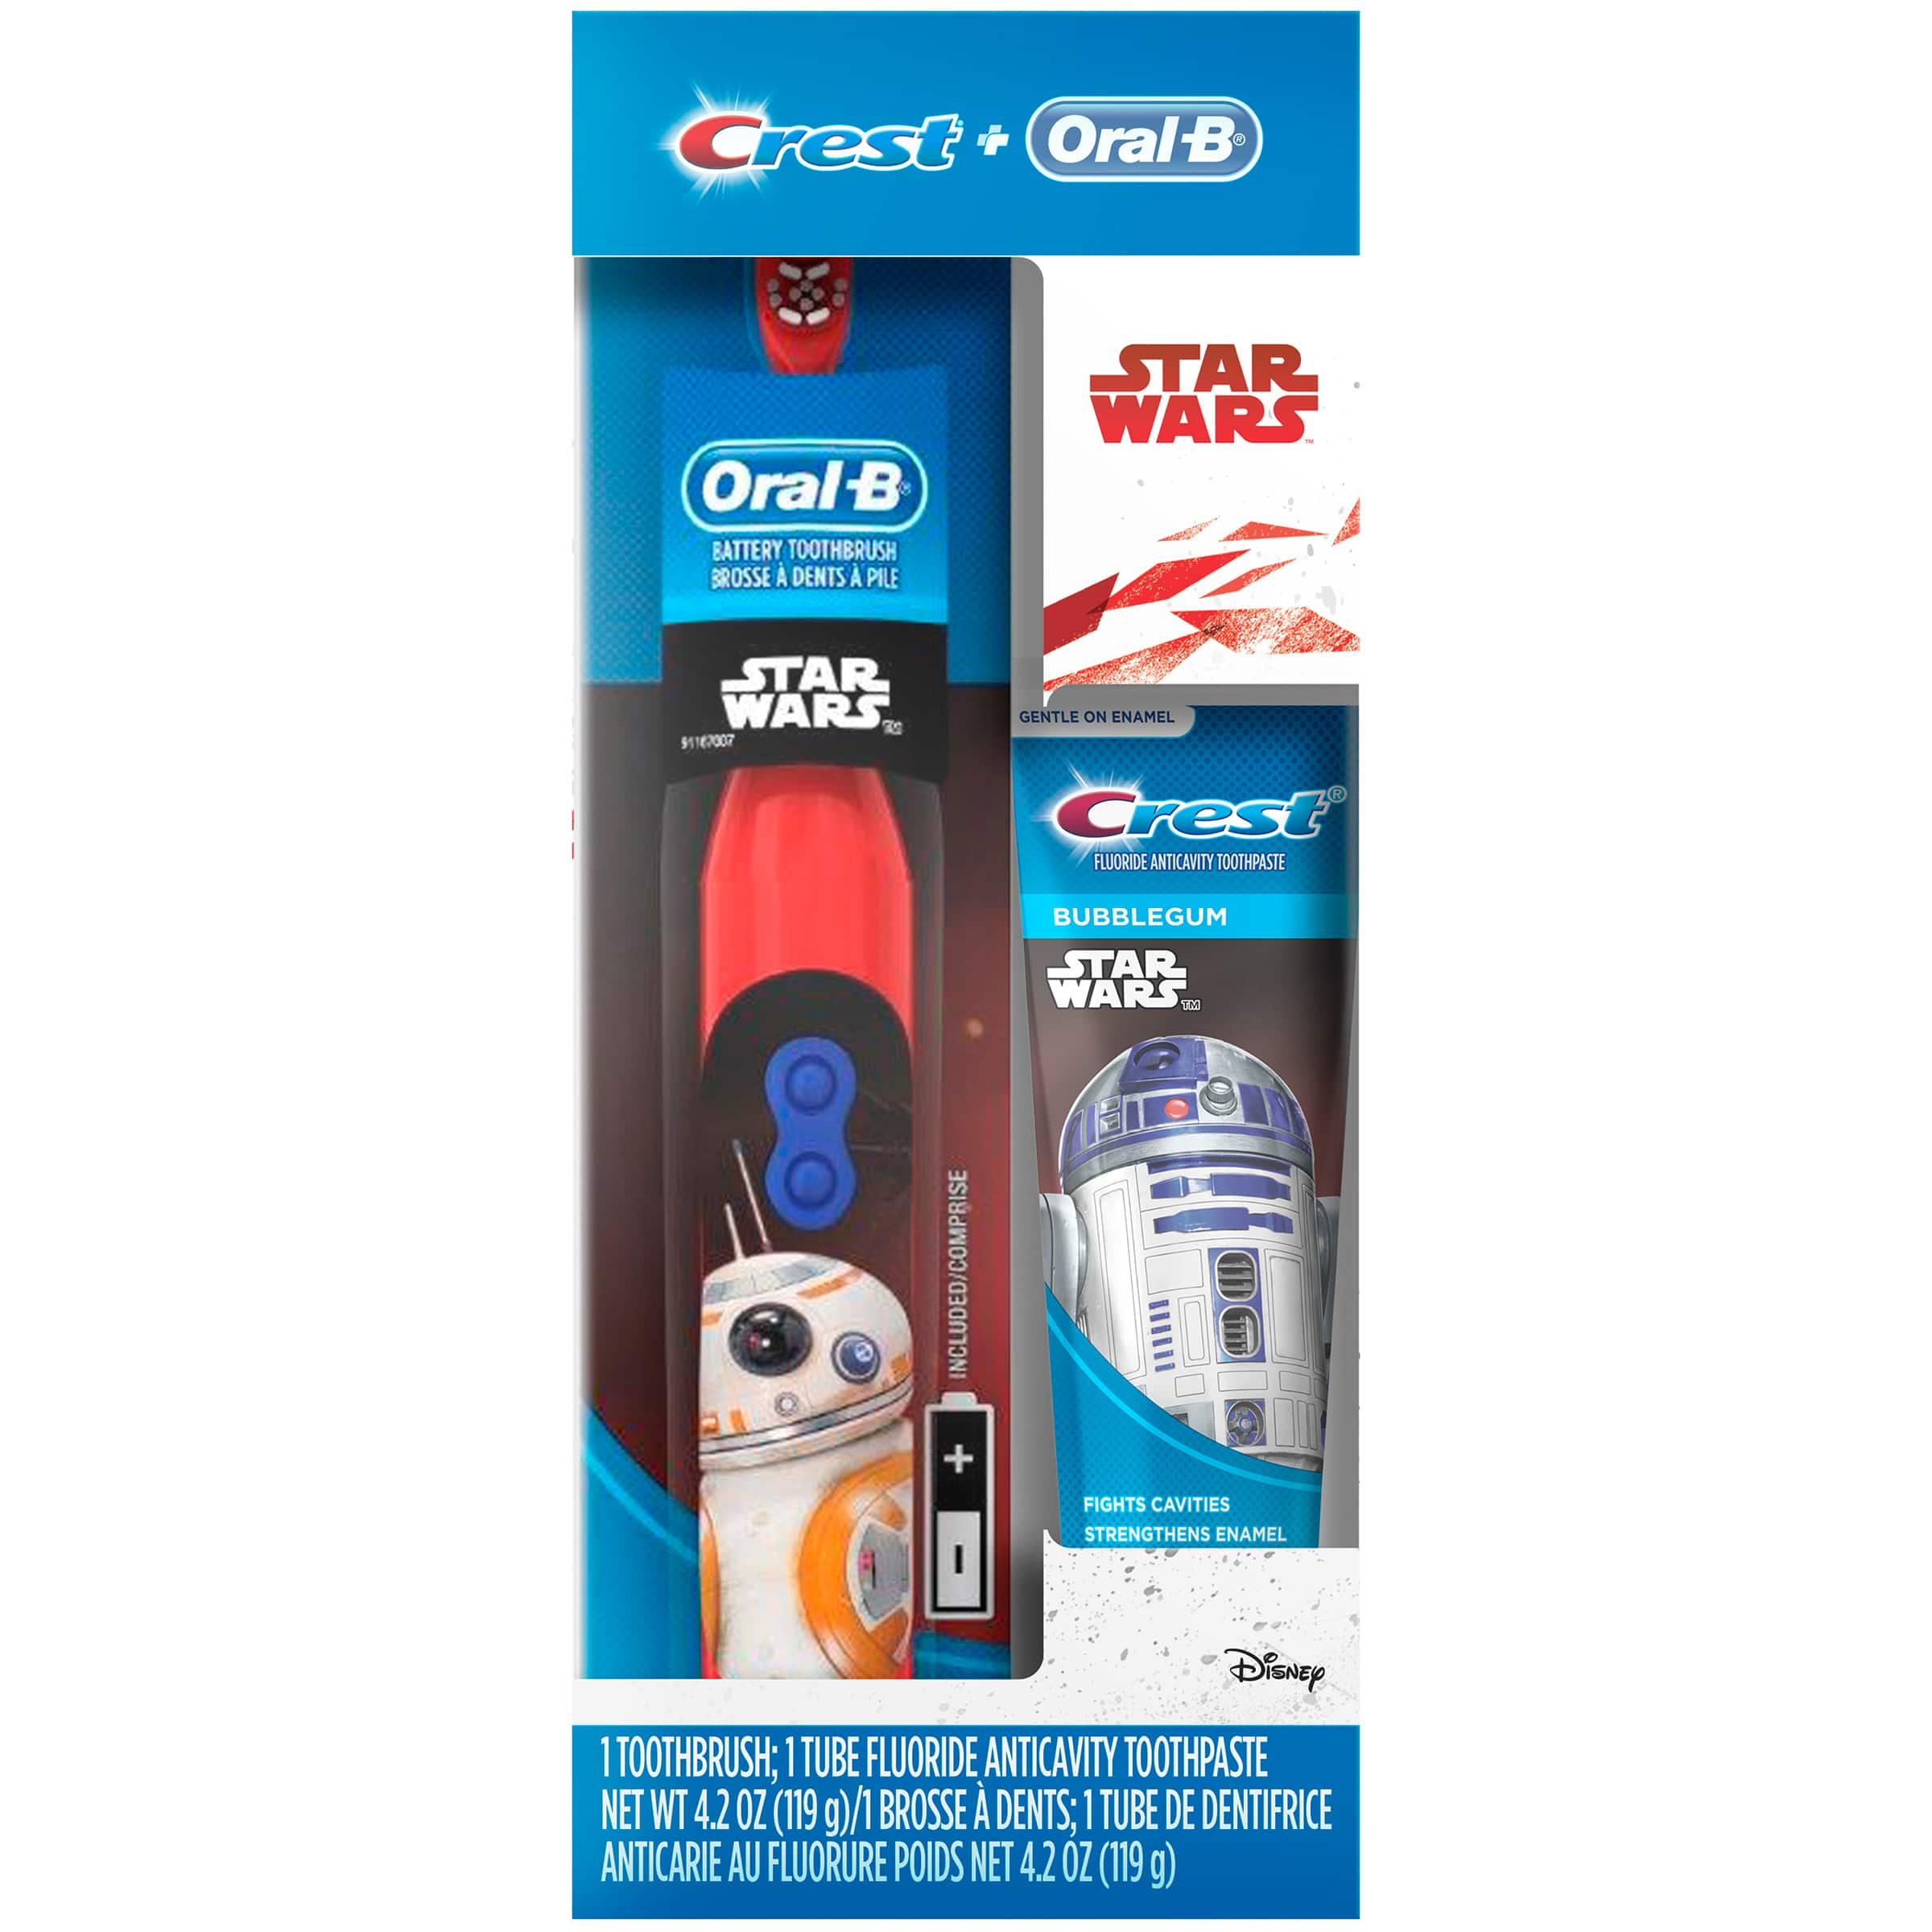 Oral-B and Crest Kid's Holiday Pack Featuring Disney's STAR WARS (Toothbrush & Toothpaste) $2.98 Walmart Free Store Pickup